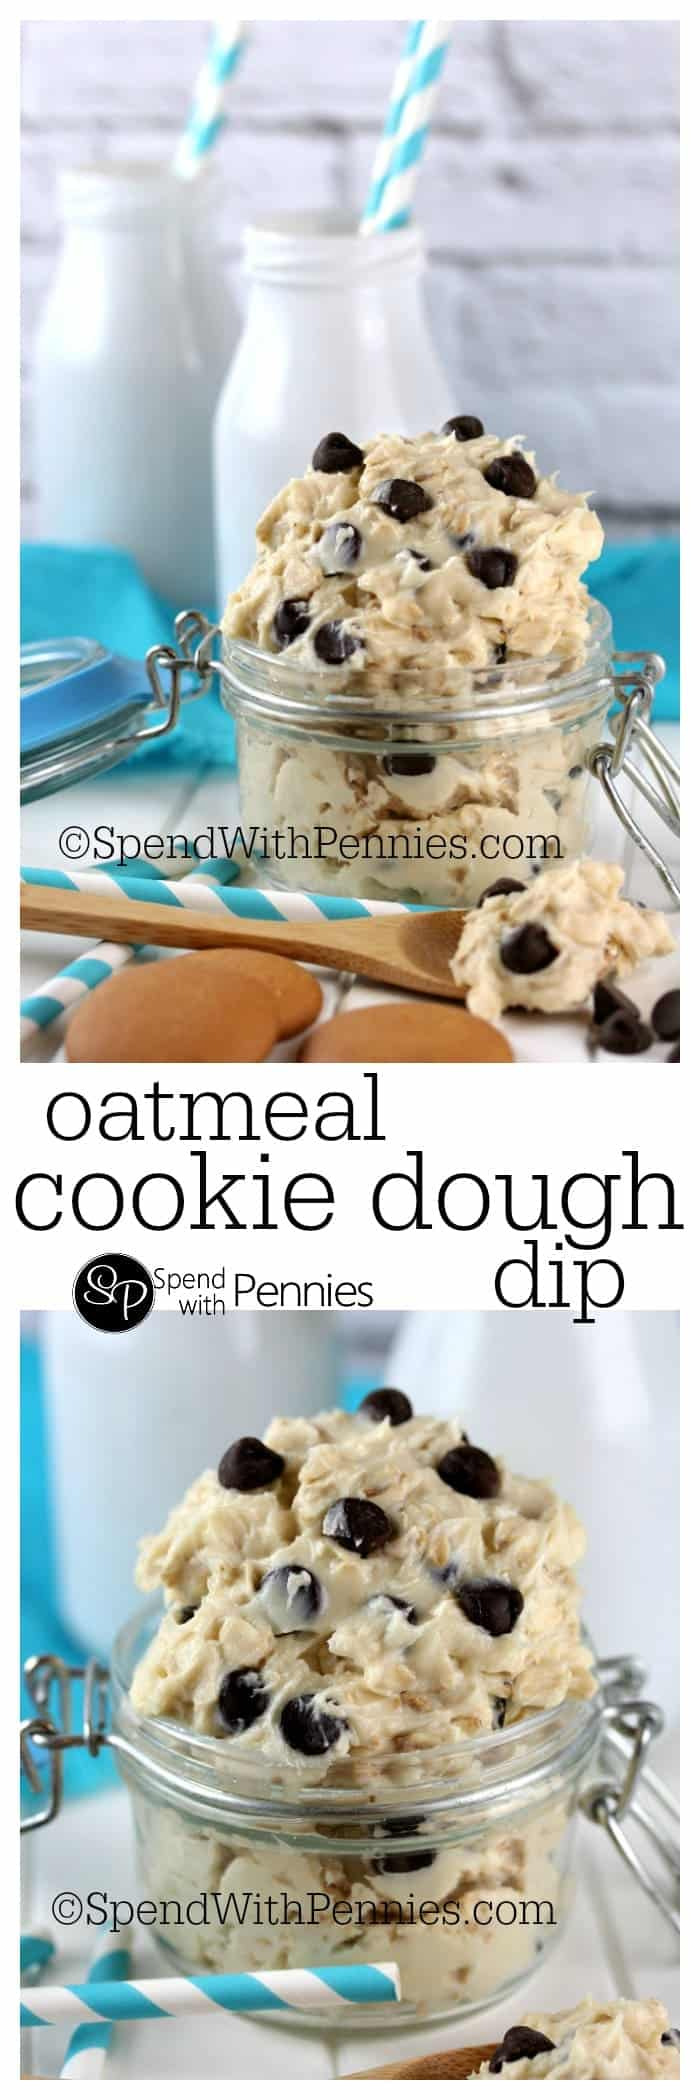 Oatmeal Cookie Dough Dip in a jar with milk bottles in the background, and a closeup of Oatmeal Cookie Dough Dip in a jar